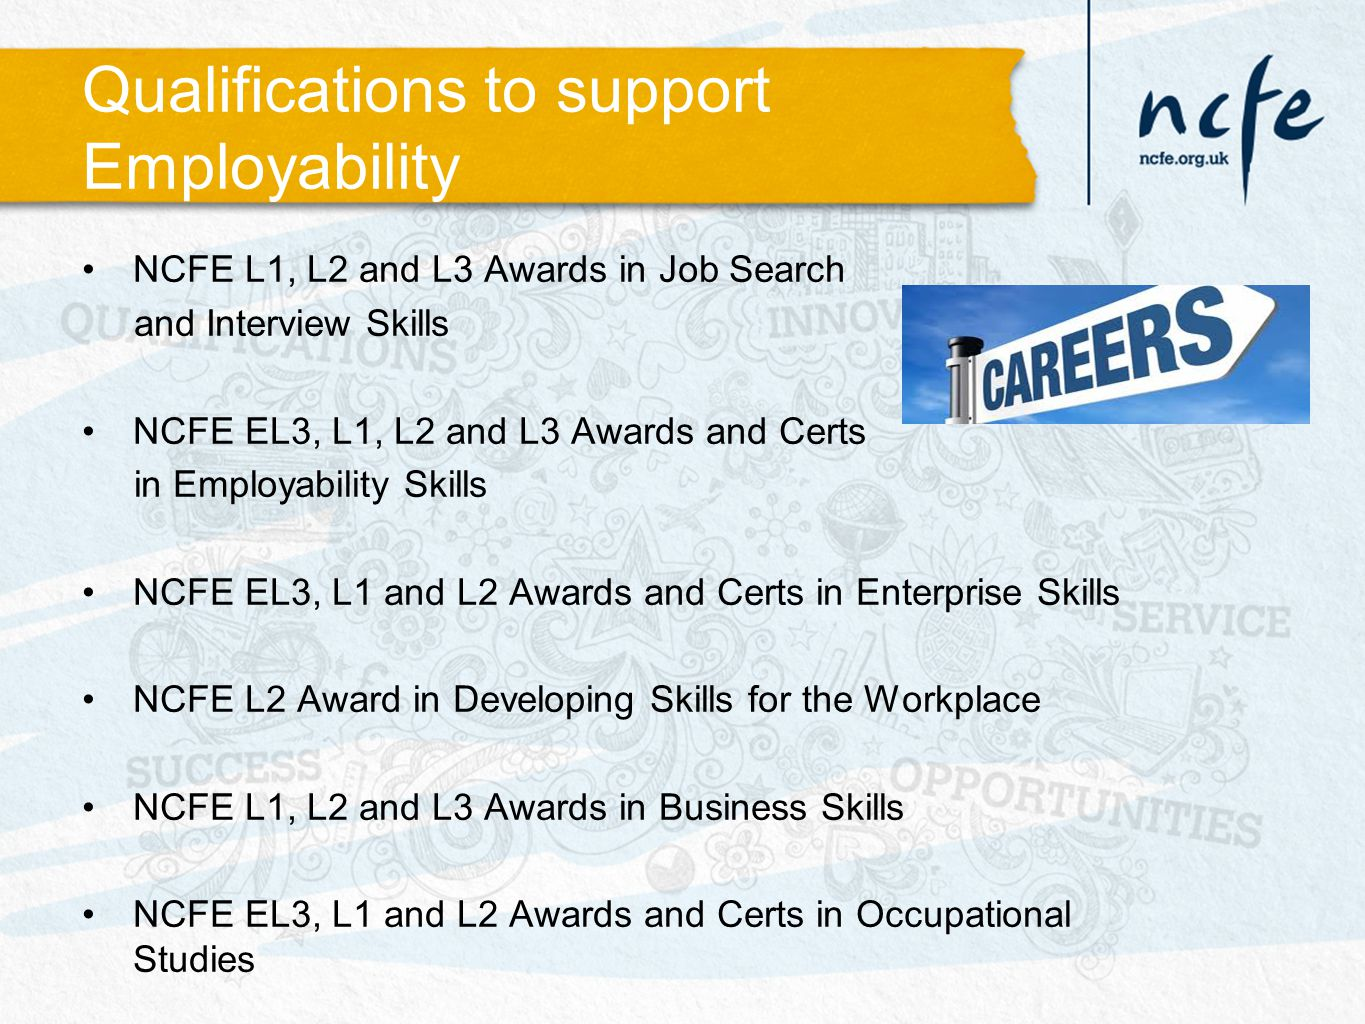 Qualifications to support Employability NCFE L1, L2 and L3 Awards in Job Search and Interview Skills NCFE EL3, L1, L2 and L3 Awards and Certs in Employability Skills NCFE EL3, L1 and L2 Awards and Certs in Enterprise Skills NCFE L2 Award in Developing Skills for the Workplace NCFE L1, L2 and L3 Awards in Business Skills NCFE EL3, L1 and L2 Awards and Certs in Occupational Studies